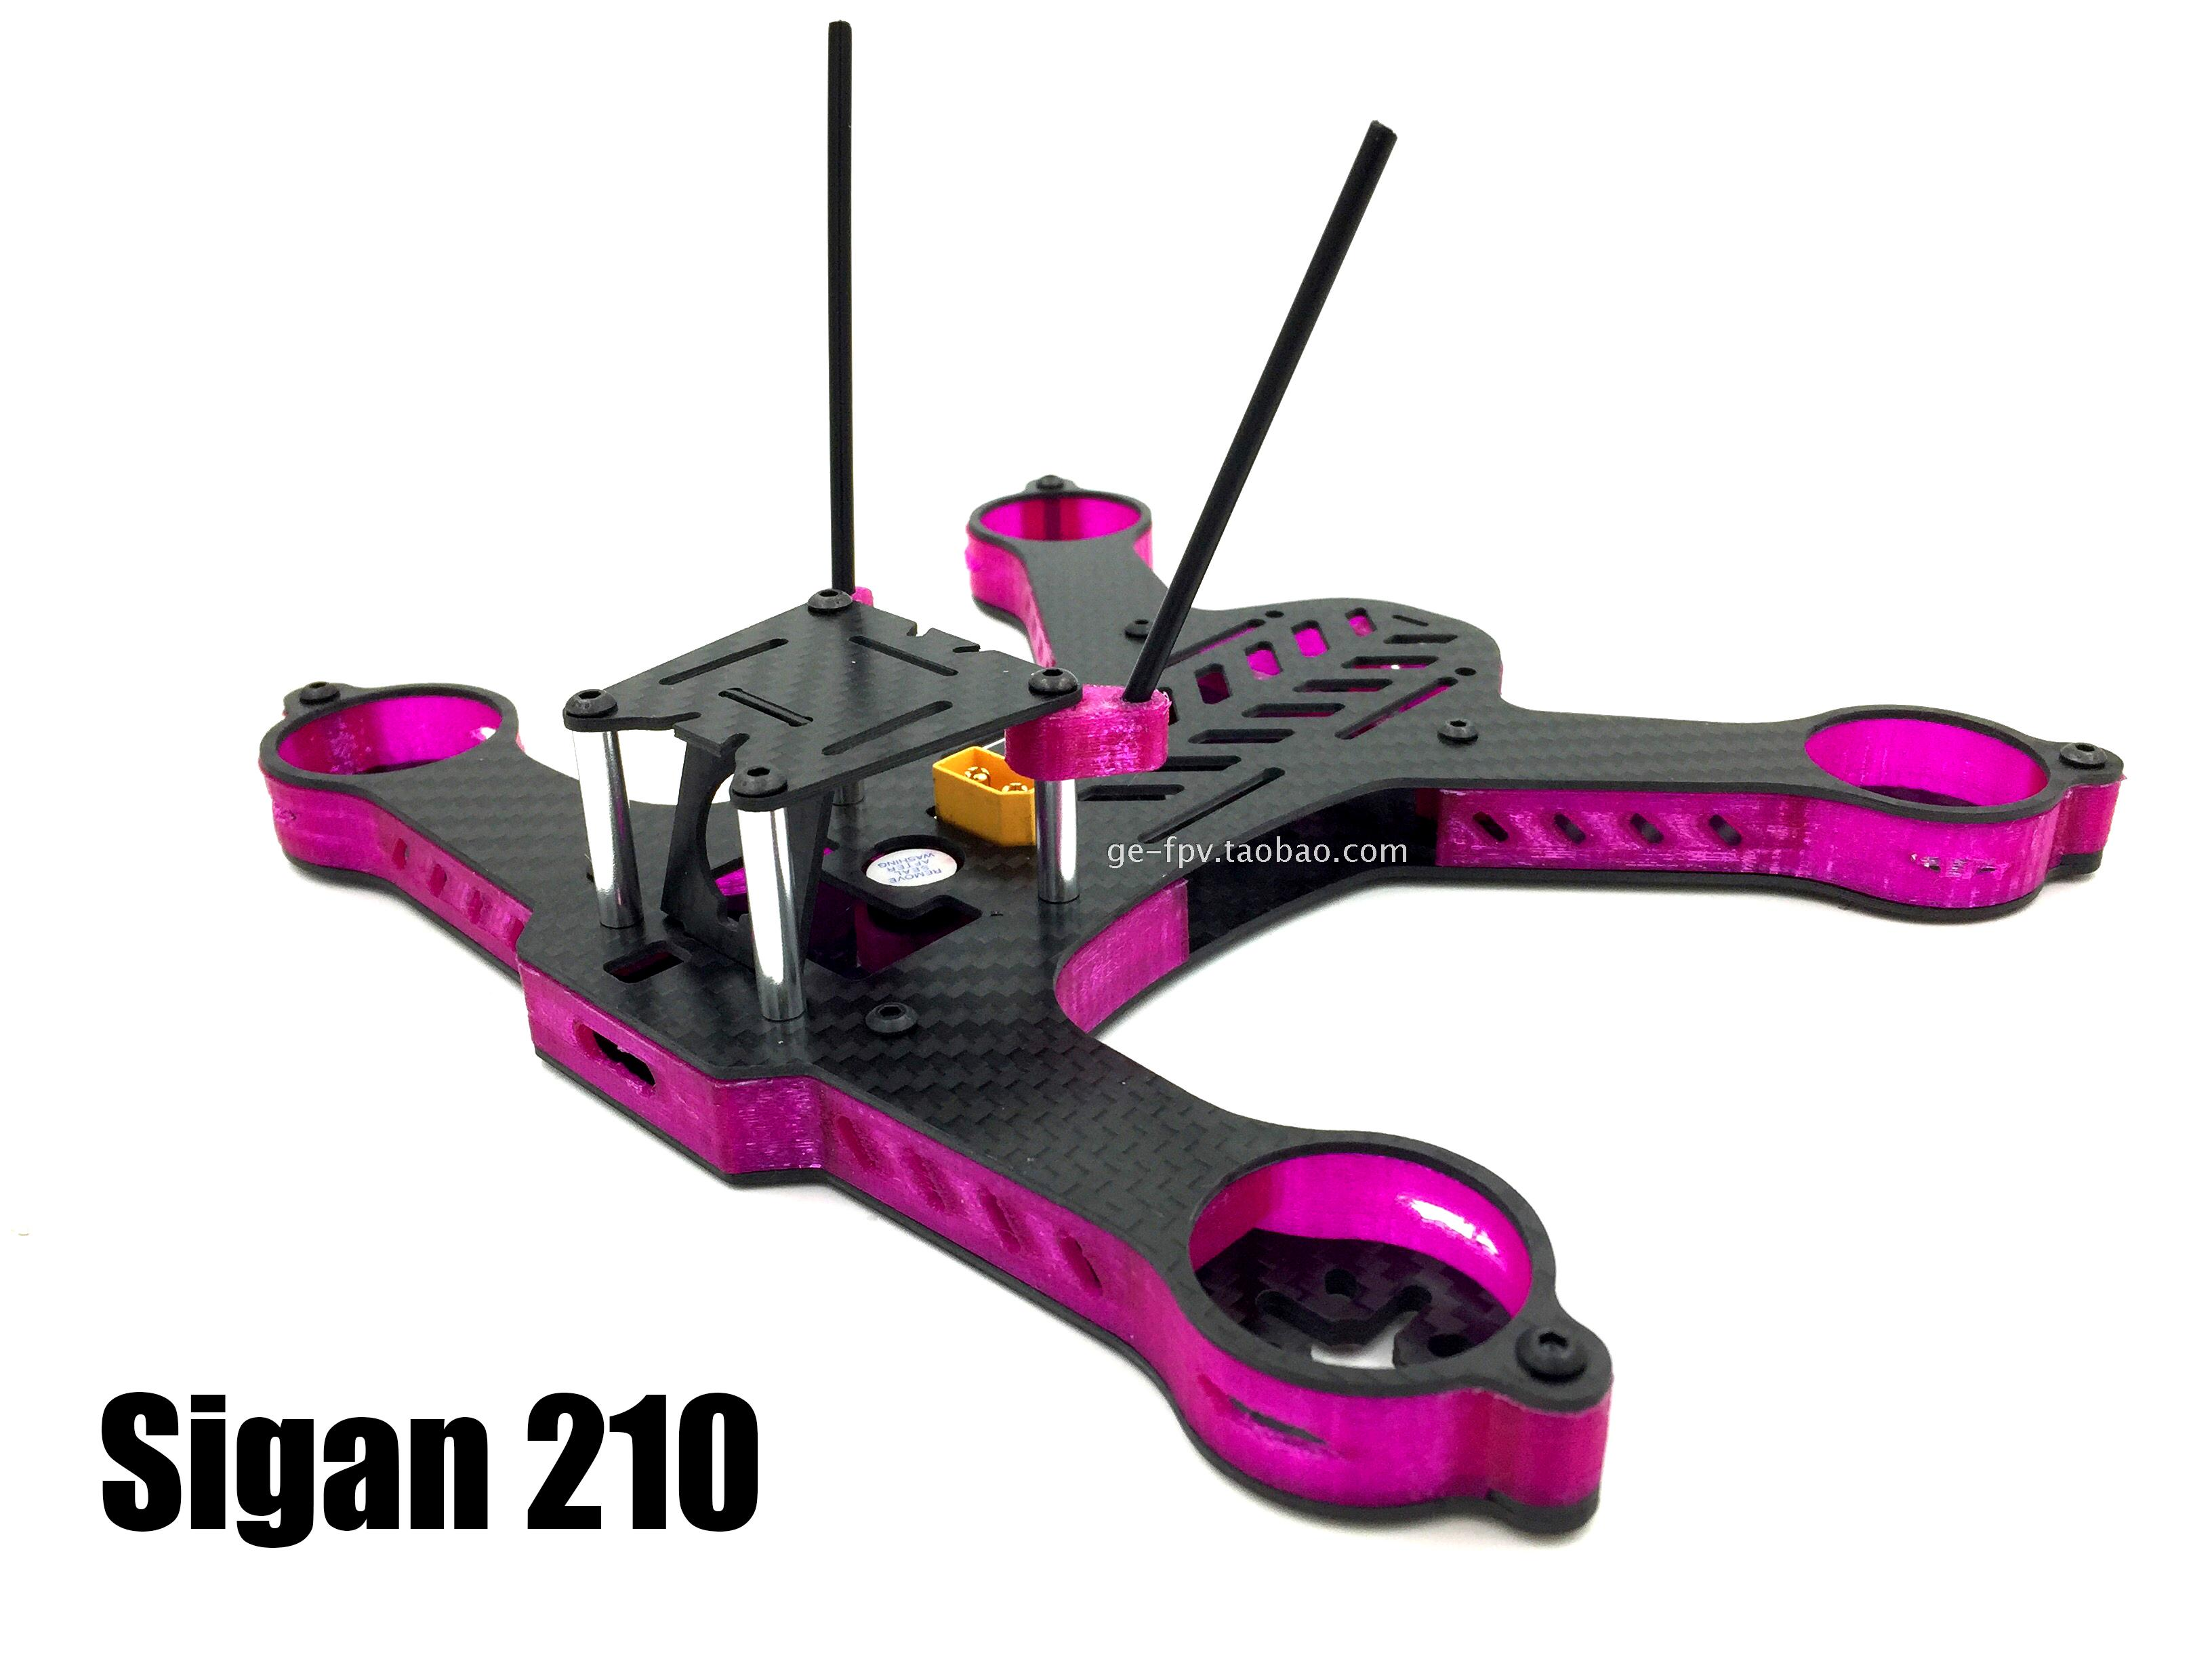 Фотография Sigan QAV 210 GE-FPV RC Quadcopter Frame Kit